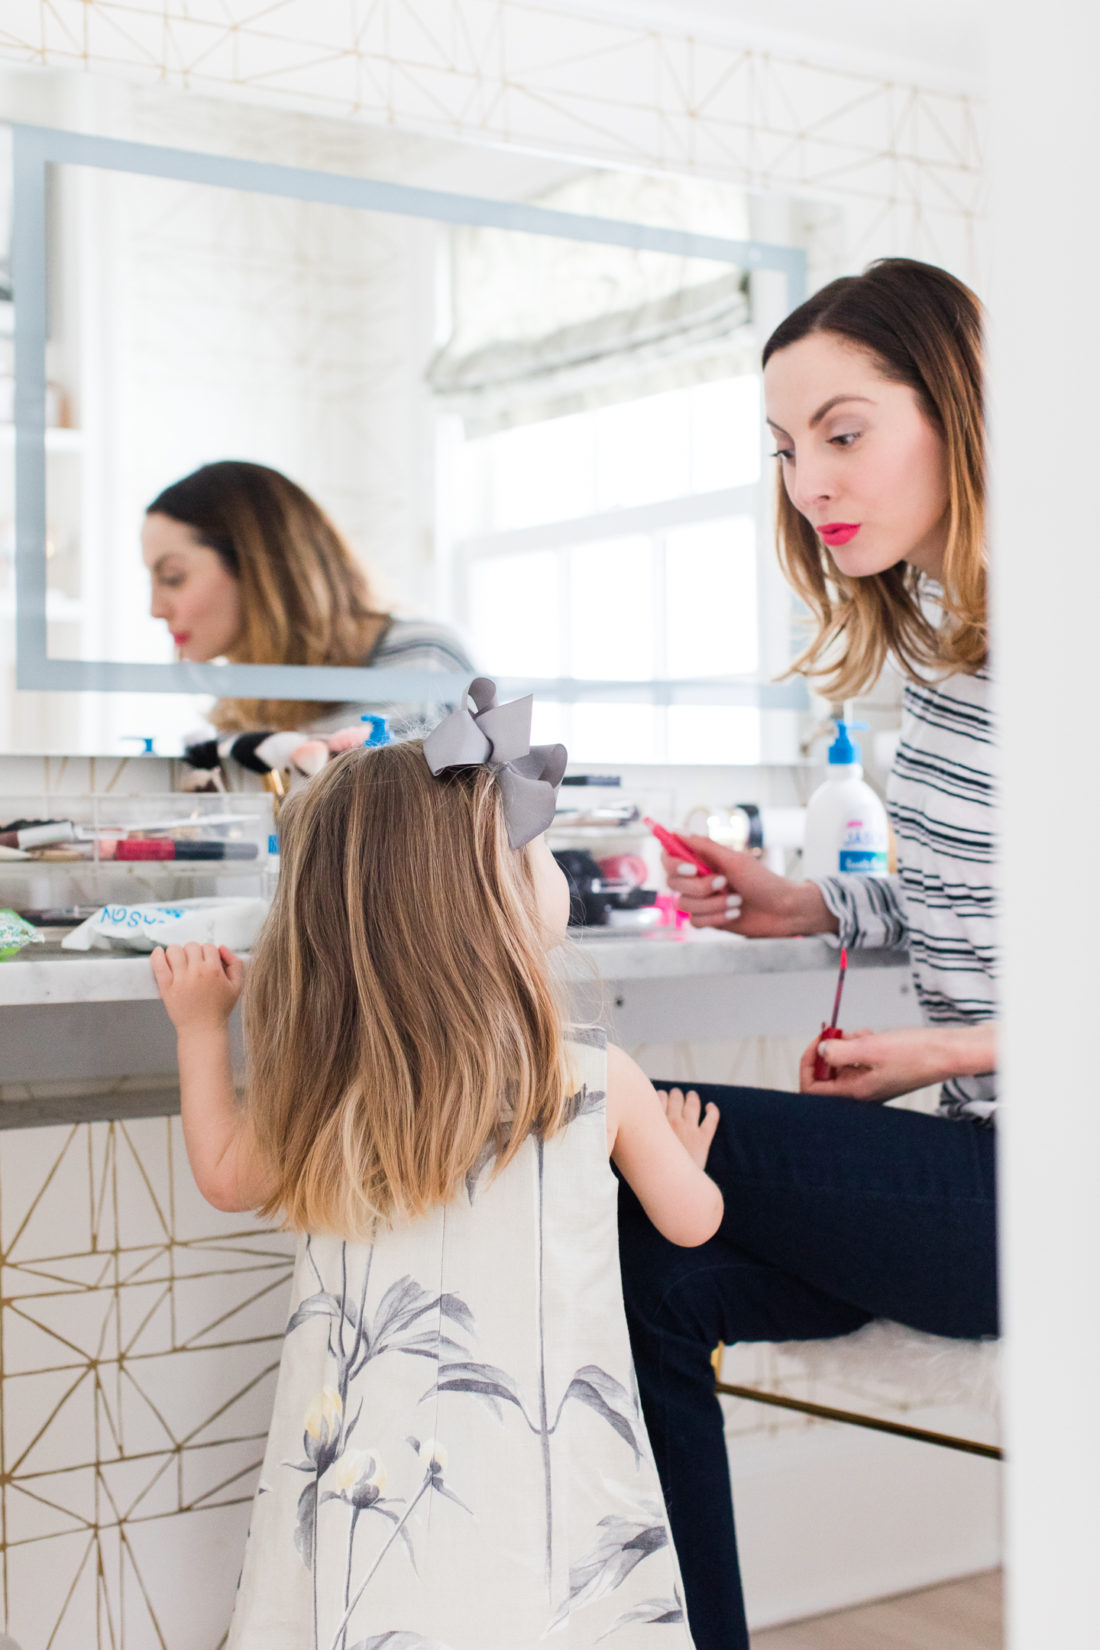 Eva Amurri martino applies makeup in her Glam Room while two year old daughter Marlowe looks on